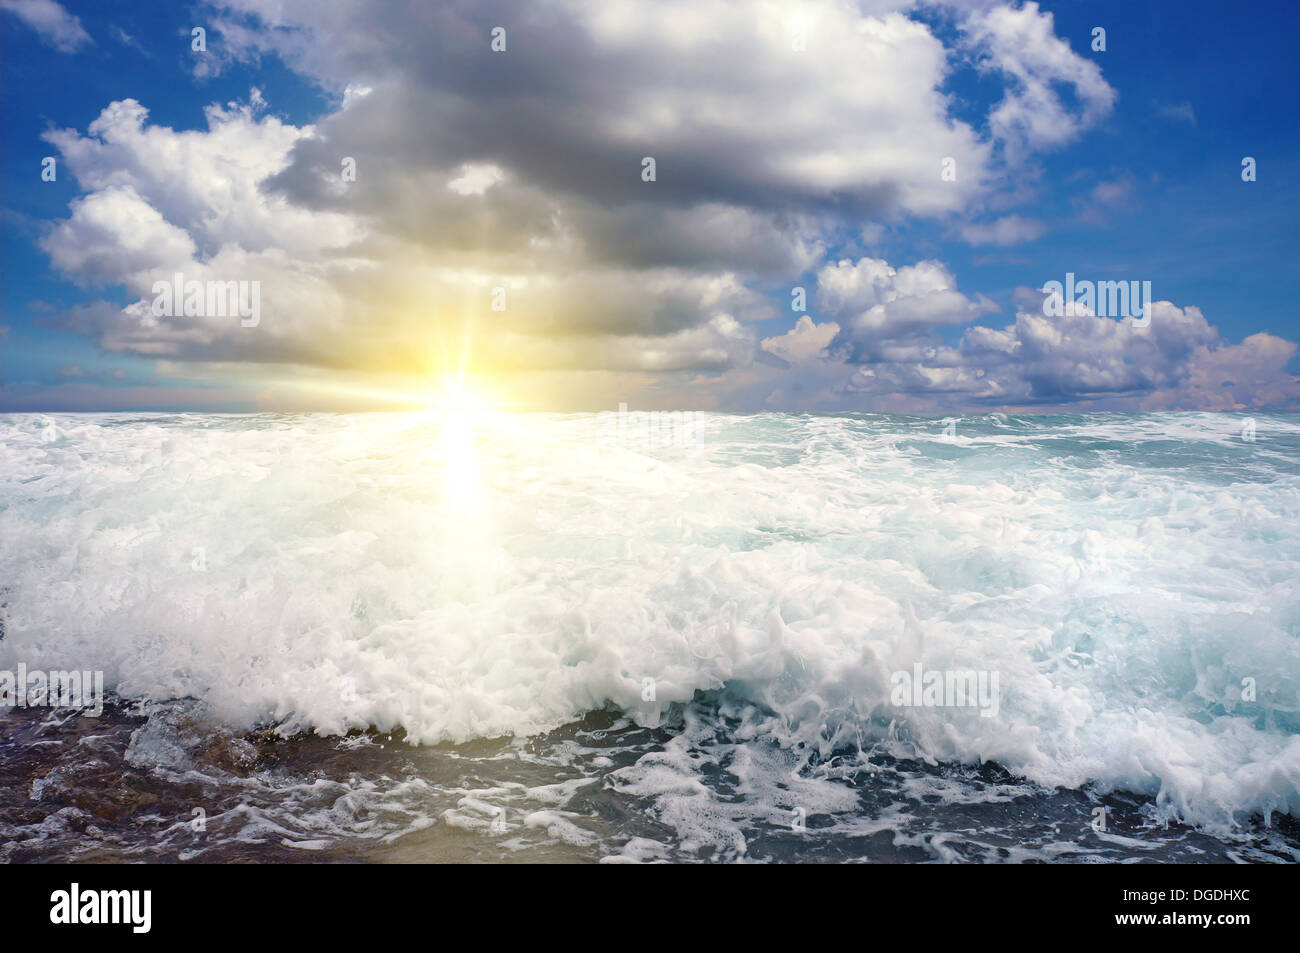 Breaking wave with sunset light and cloudy sky - Stock Image